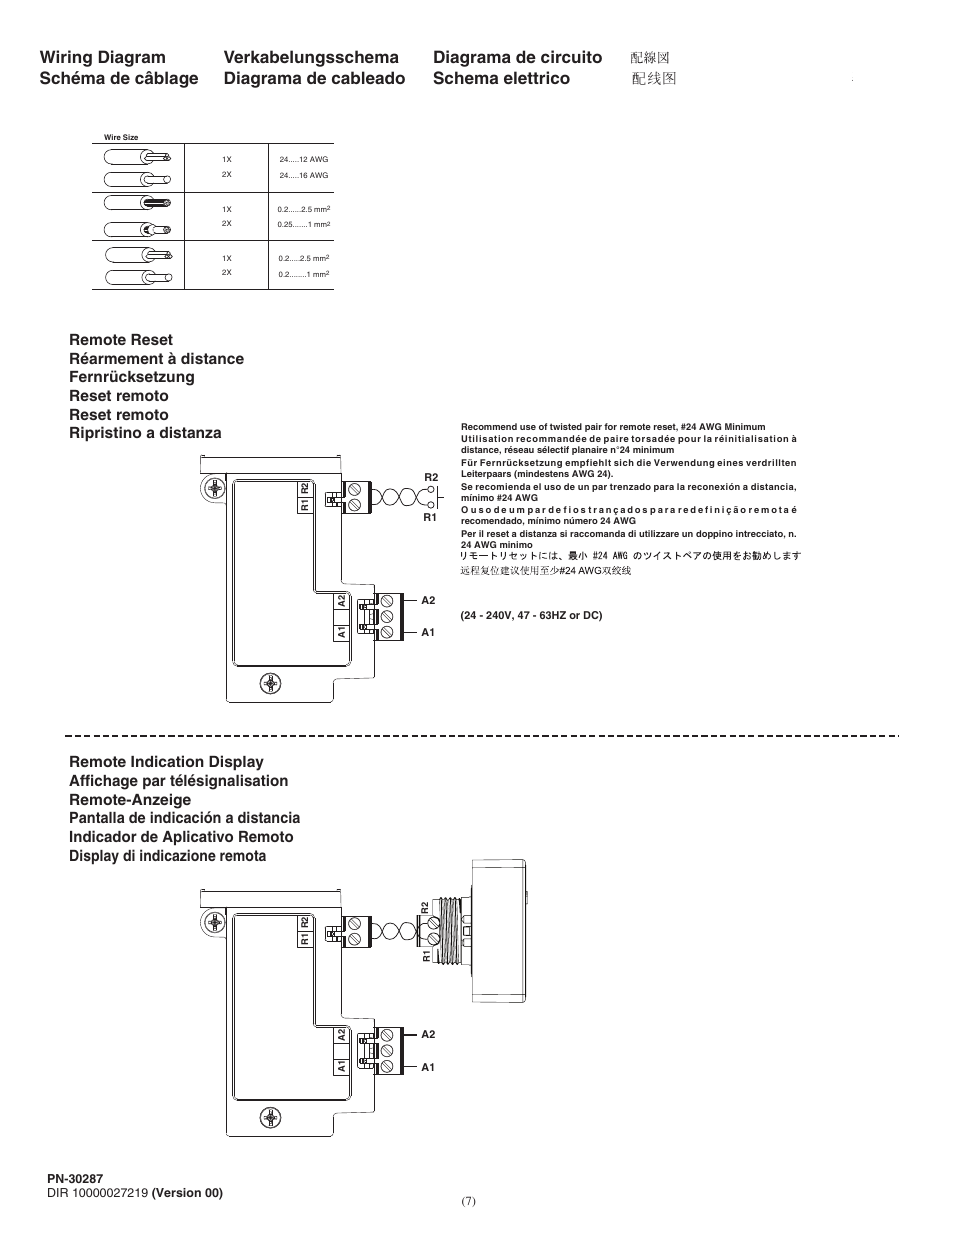 wiring diagram rockwell automation 193 err e1 plus remote reset R6 Wiring Diagram wiring diagram rockwell automation 193 err e1 plus remote reset accessory module user manual